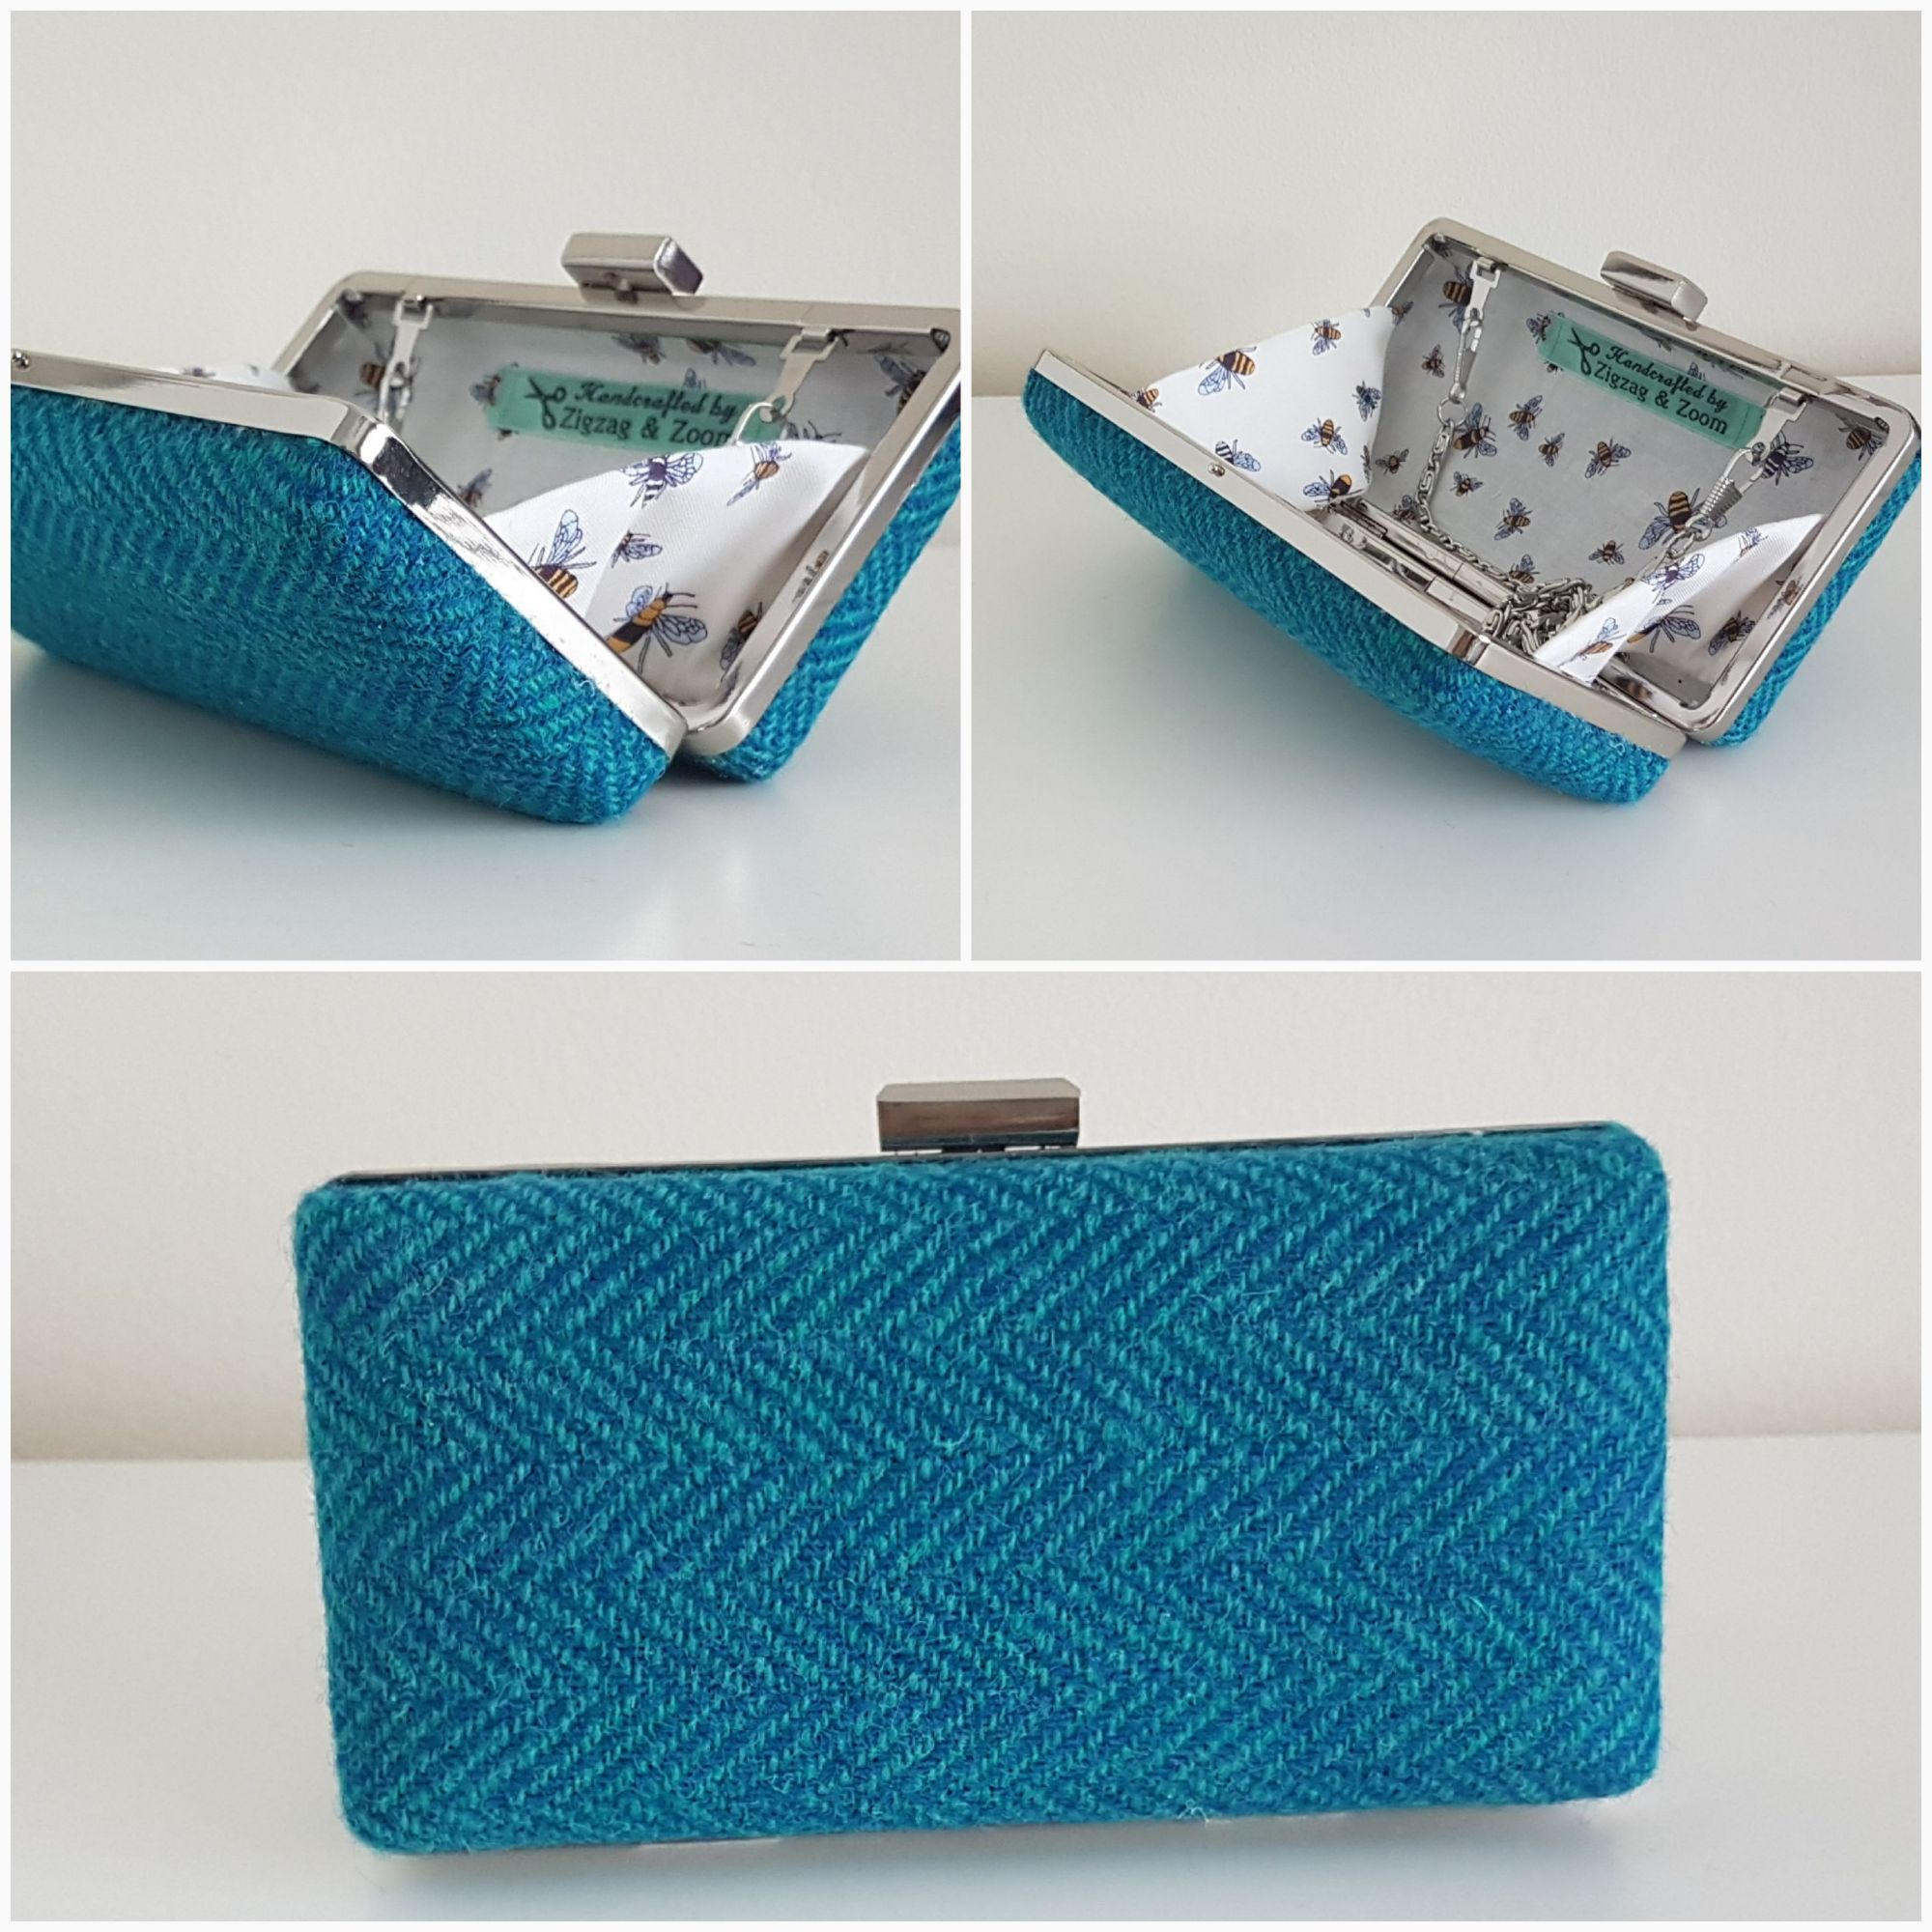 Blue Harris Tweed & bee clutch bag